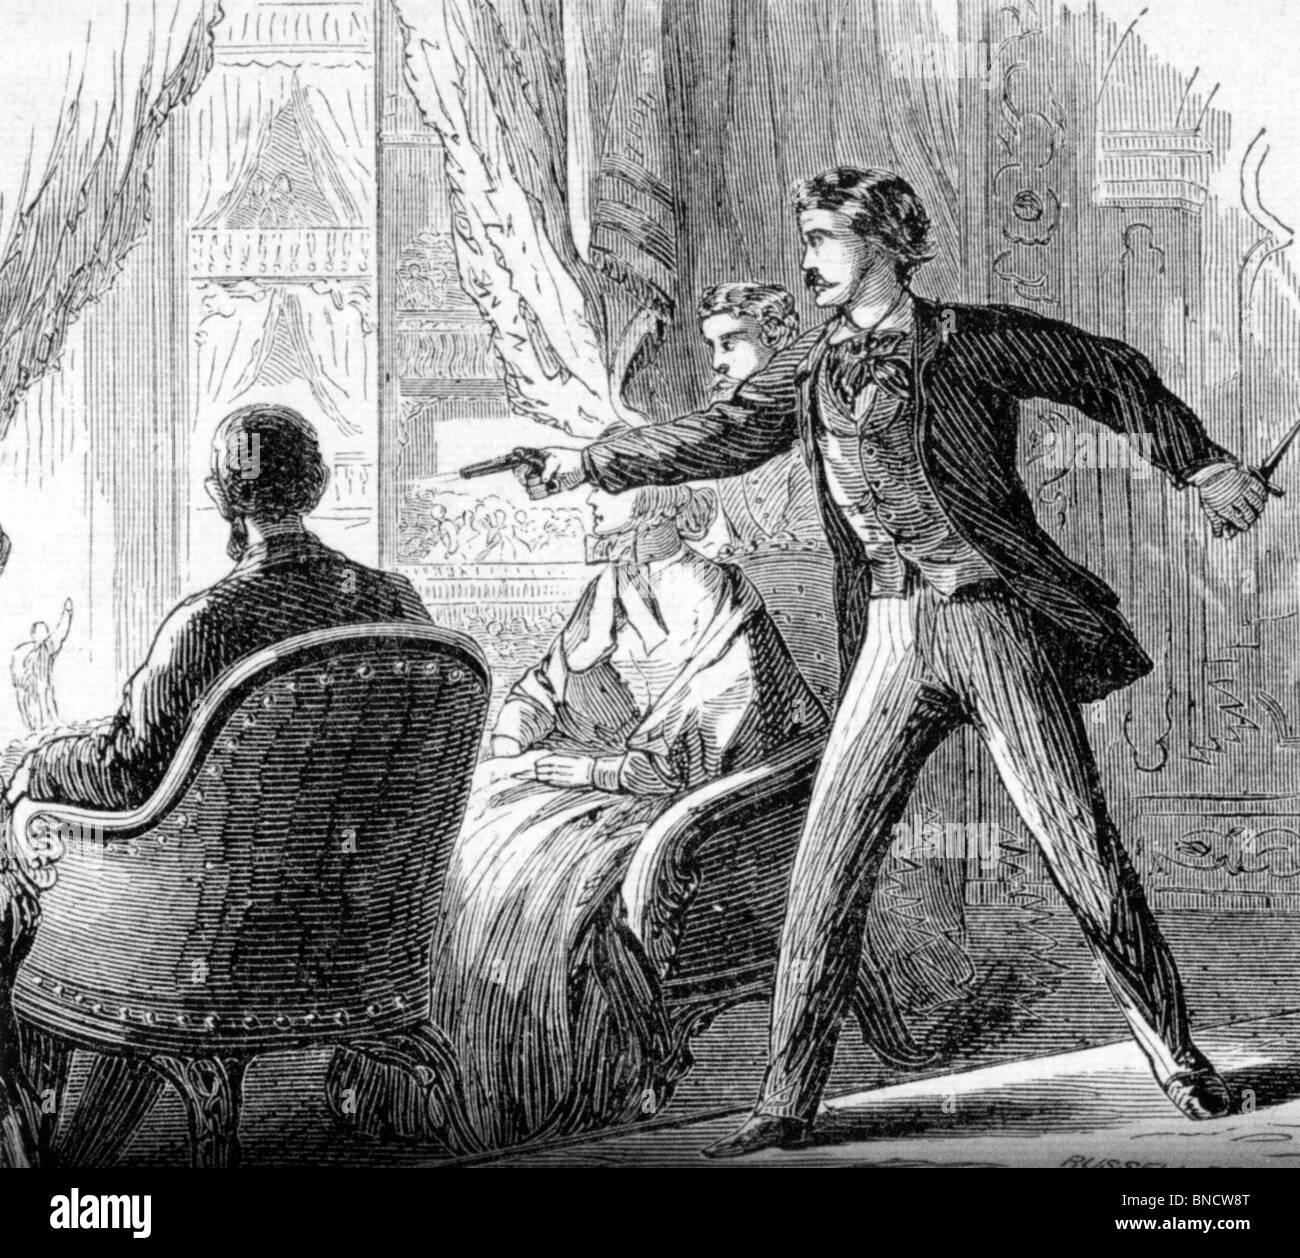 ABRAHAM LINCOLN assassination 14 April 1865 at Ford's Theatre, Washington,  by actor John Wilkes Booth